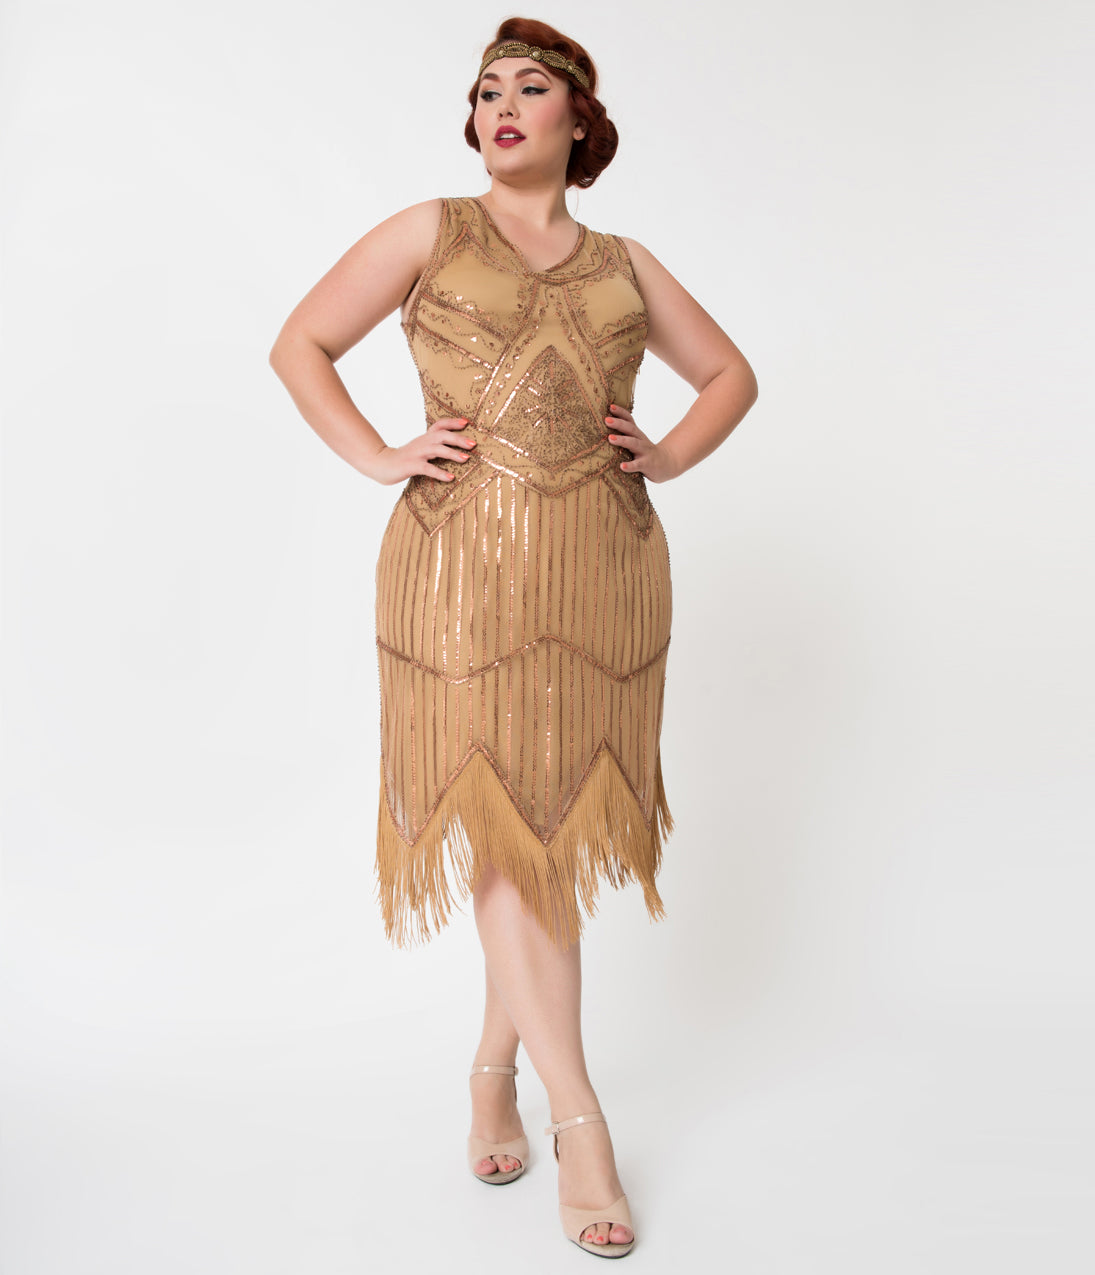 Flapper Costume: How to Dress Like a 20s Flapper Girl Unique Vintage Plus Size 1920S Bronze Beaded Sequin Juliette Fringe Flapper Dress $28.00 AT vintagedancer.com